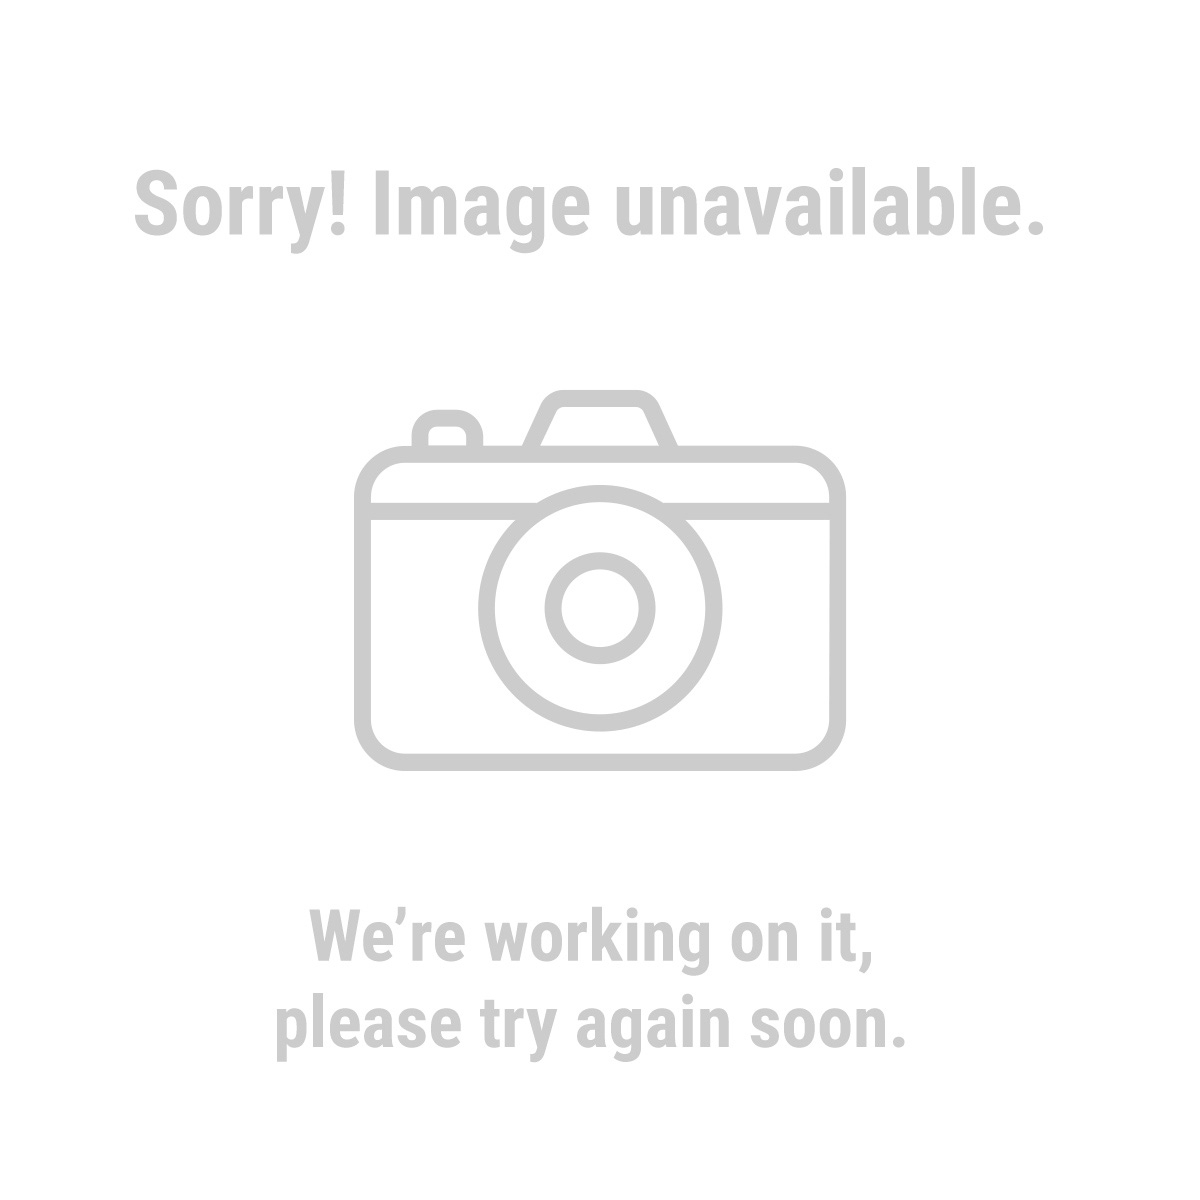 Greyhound® 97079 119cc, 1600 Watts Max/1400 Watts Rated Generator